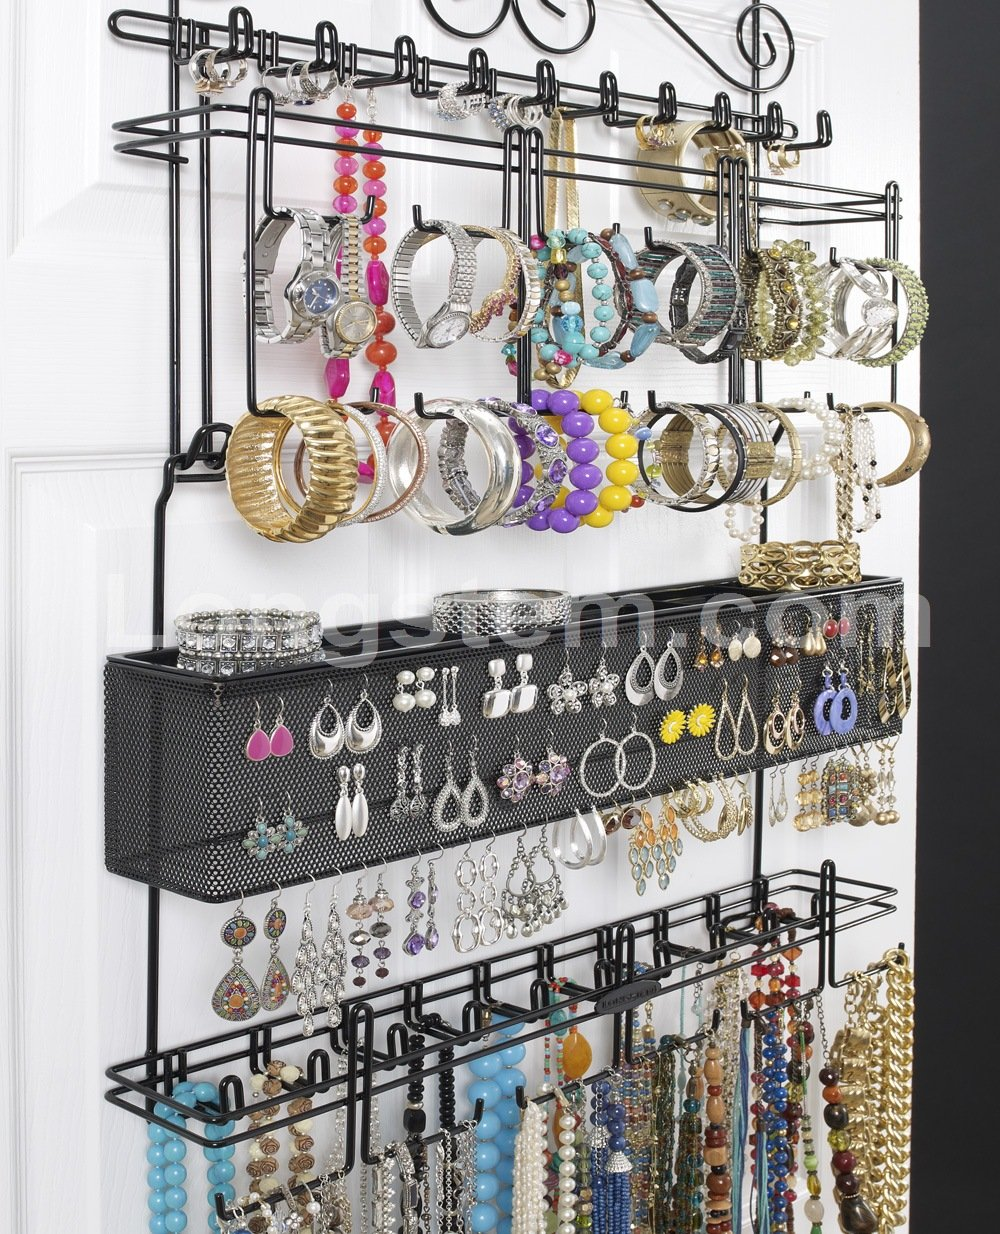 Amazon.com Longstem 6100 Overdoor Wall Jewelry Organizer Valet in Black - Holds over 300 pieces! Unique patented product - Rated Best! Home \u0026 Kitchen & Amazon.com: Longstem: 6100 Overdoor Wall Jewelry Organizer Valet in ...